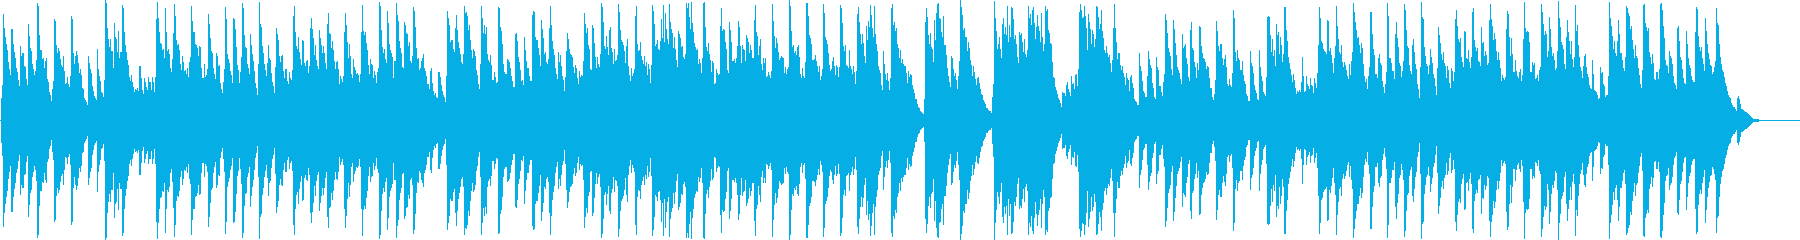 Andante Cantabile (music box)'s reproduced waveform